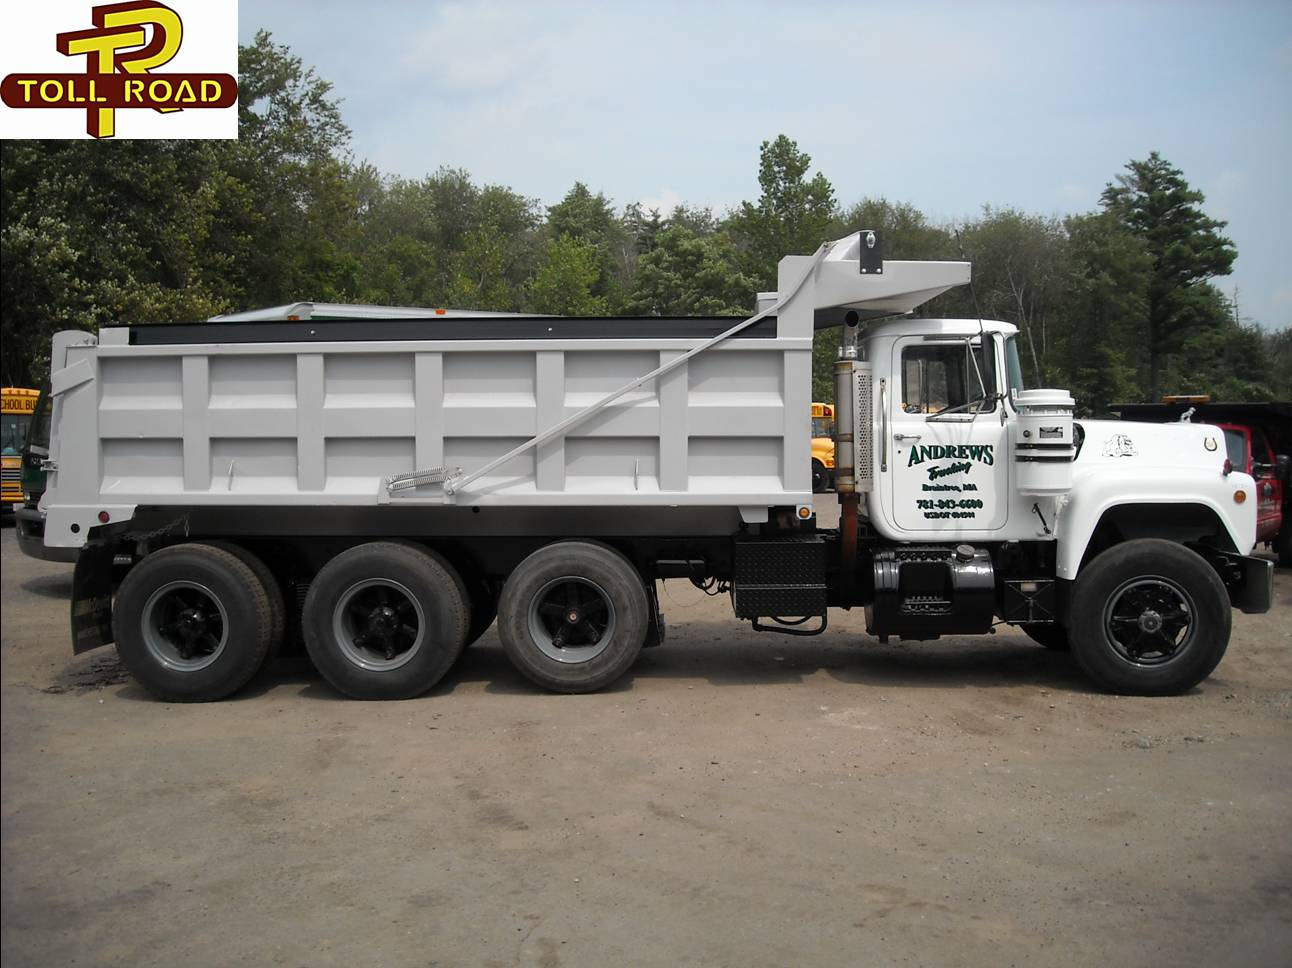 Toll Road Extreme Duty Dump Body